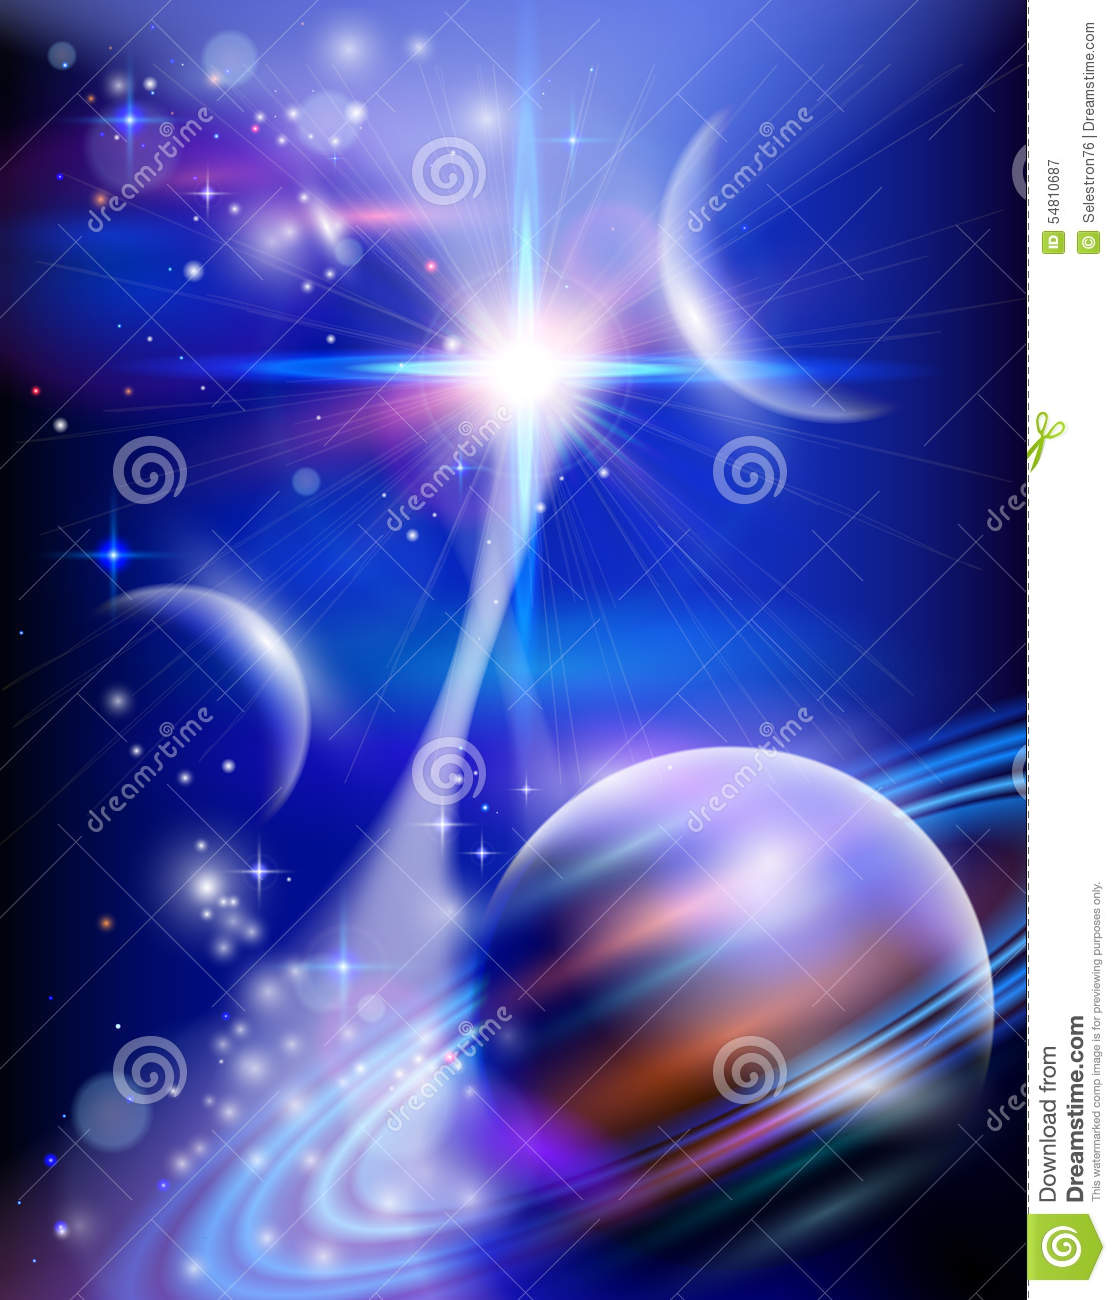 latte art wallpaper hd